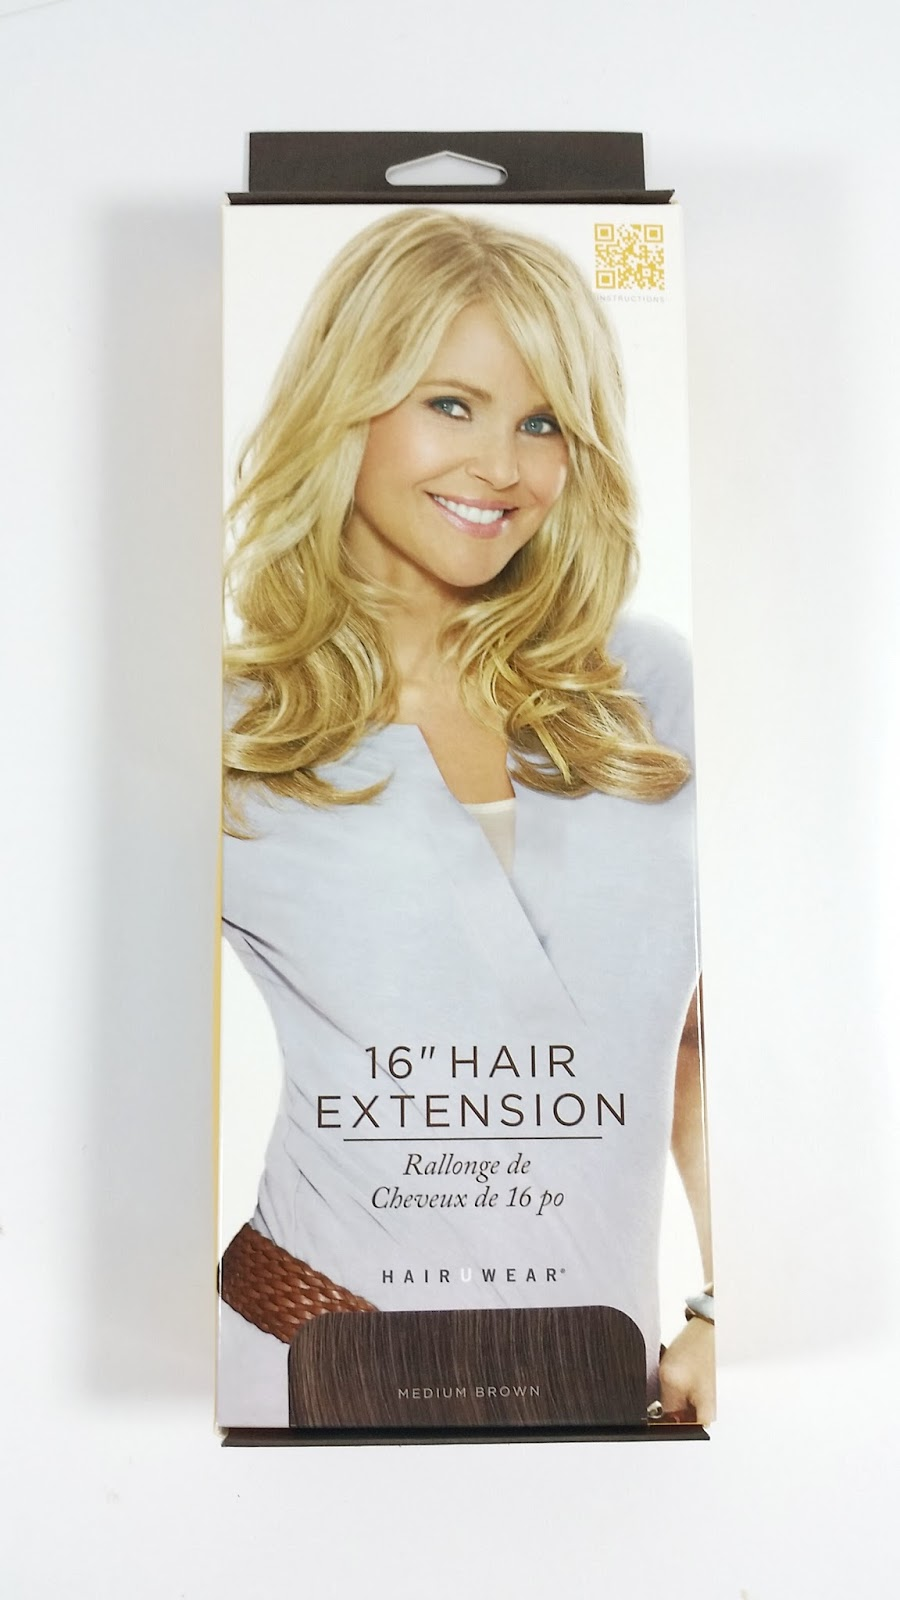 Hair2wear Christie Brinkley 16 Hair Extension Review The Budget